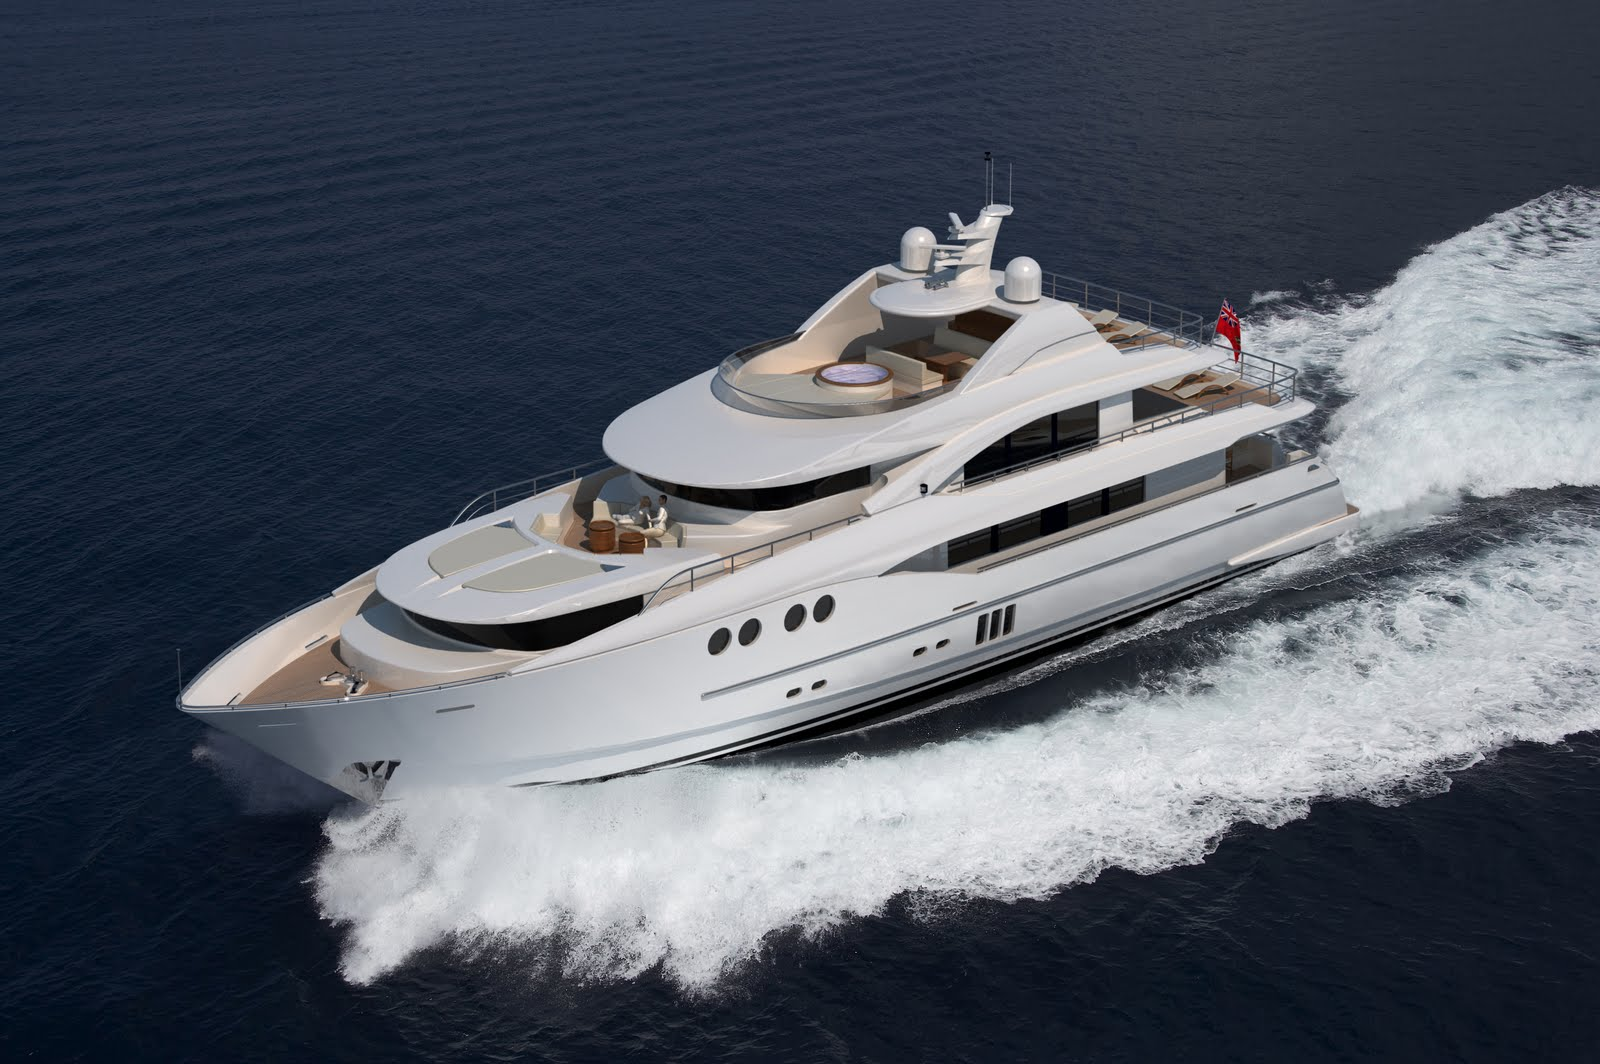 Dixon Yacht Designs has unveiled its latest creation for Johnson Yachts